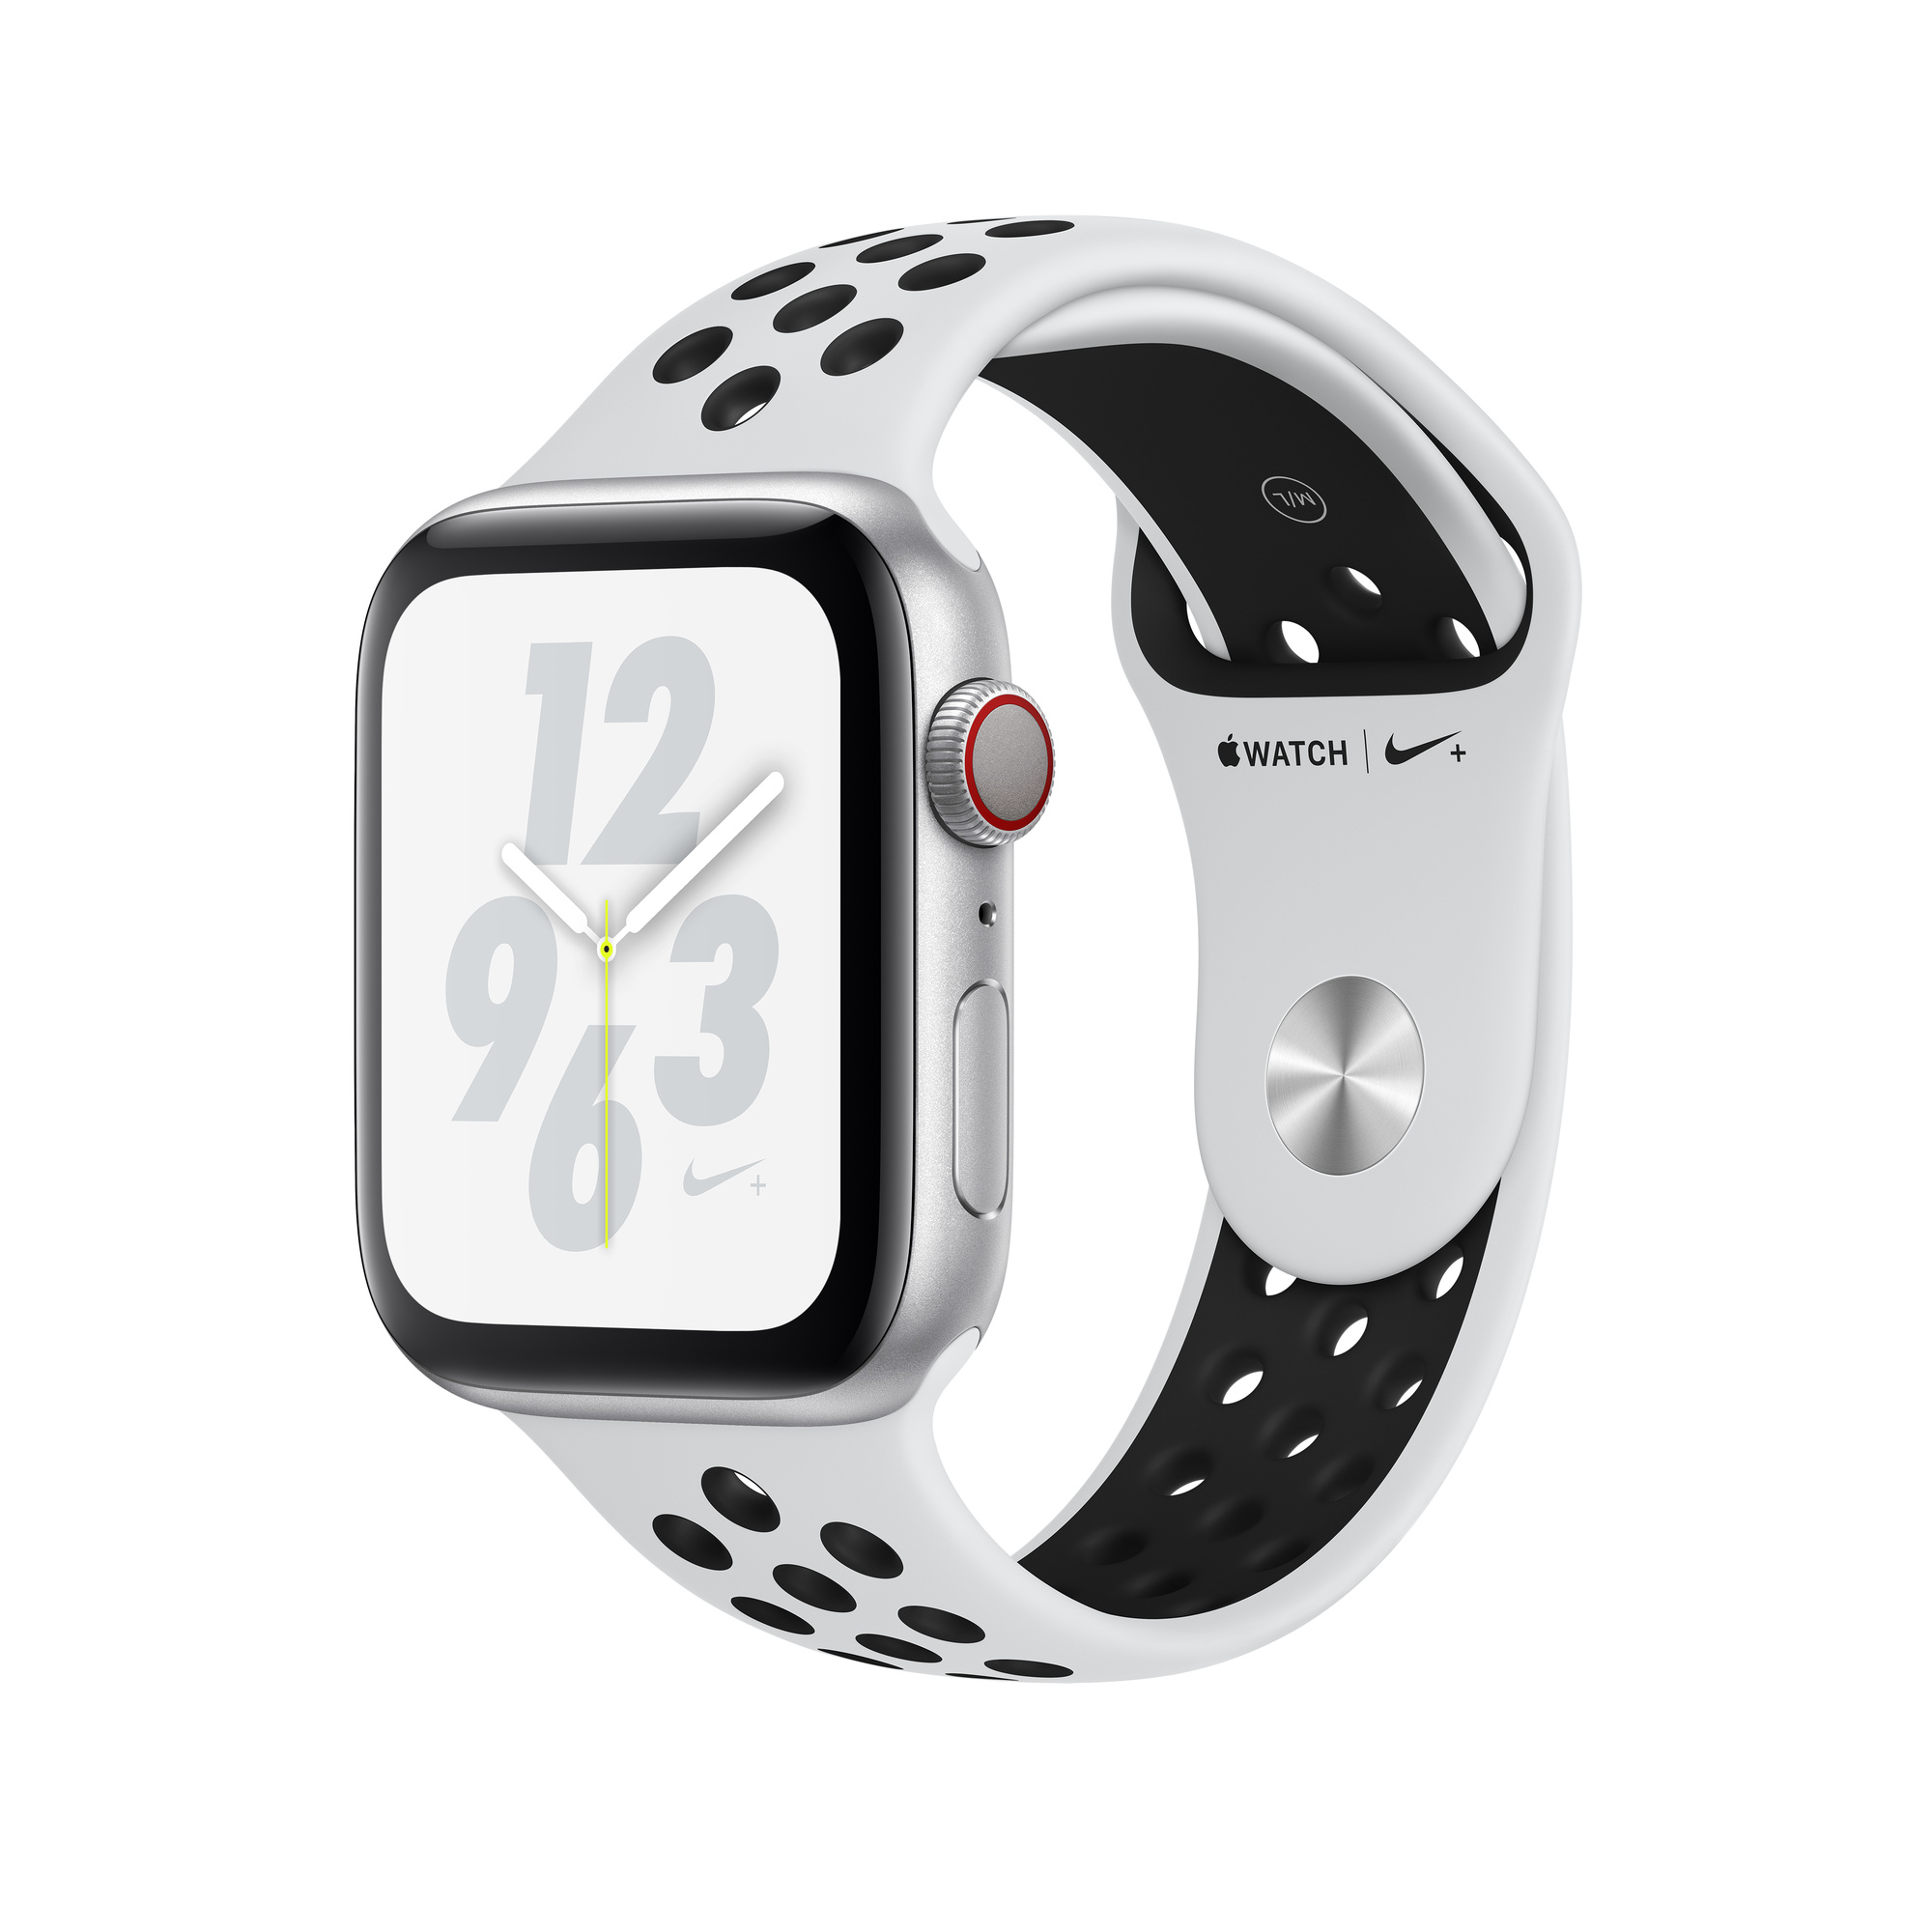 Refurbished Apple Watch Nike+ Series 4 GPS + Cellular, 44mm Silver Aluminium Case with Pure PlatinumBlack Nike Sport Band